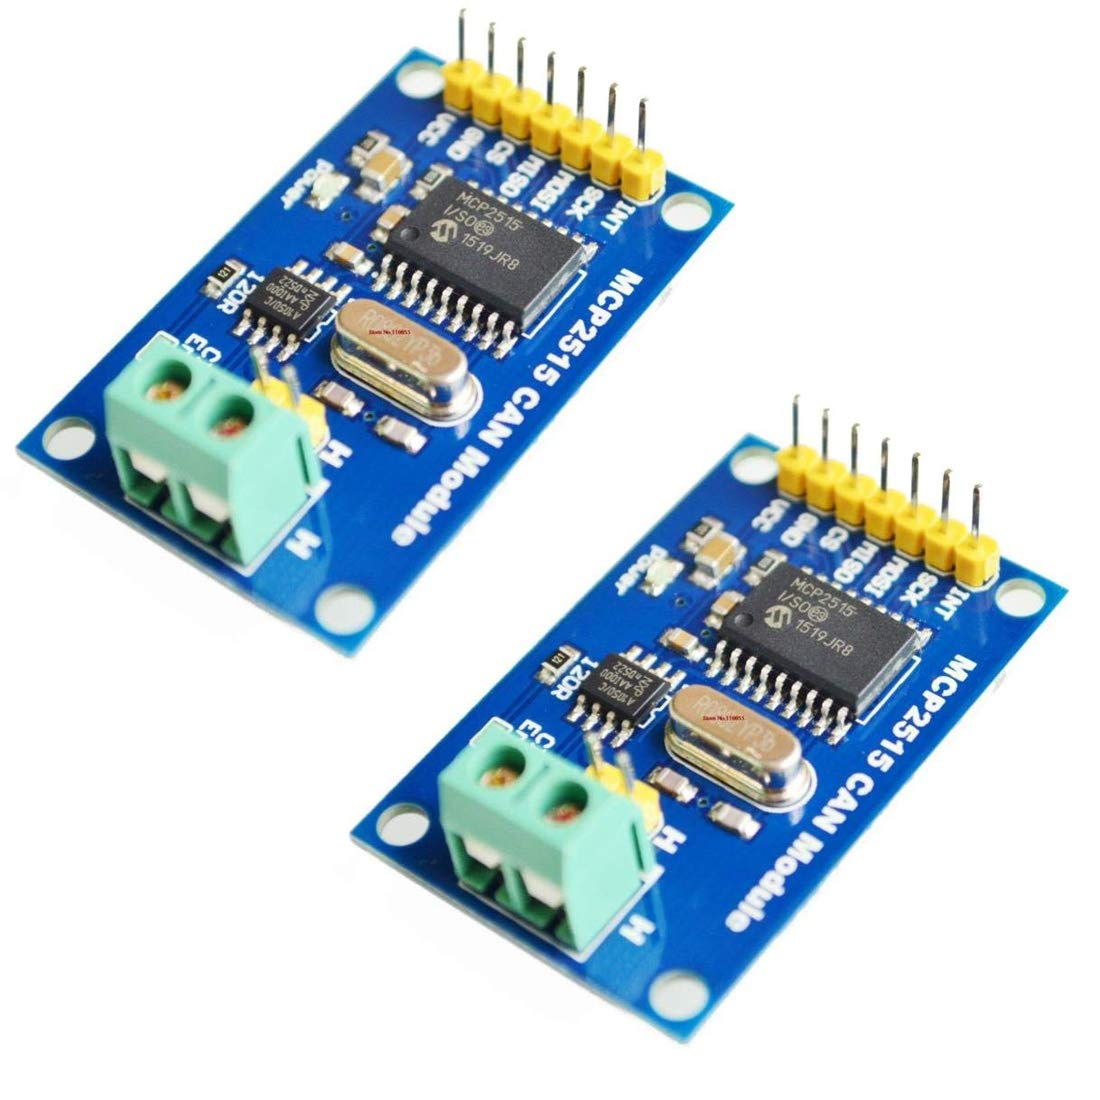 HiLetgo 2pcs MCP2515 CAN Bus Module TJA1050 Receiver SPI Module for Arduino AVR